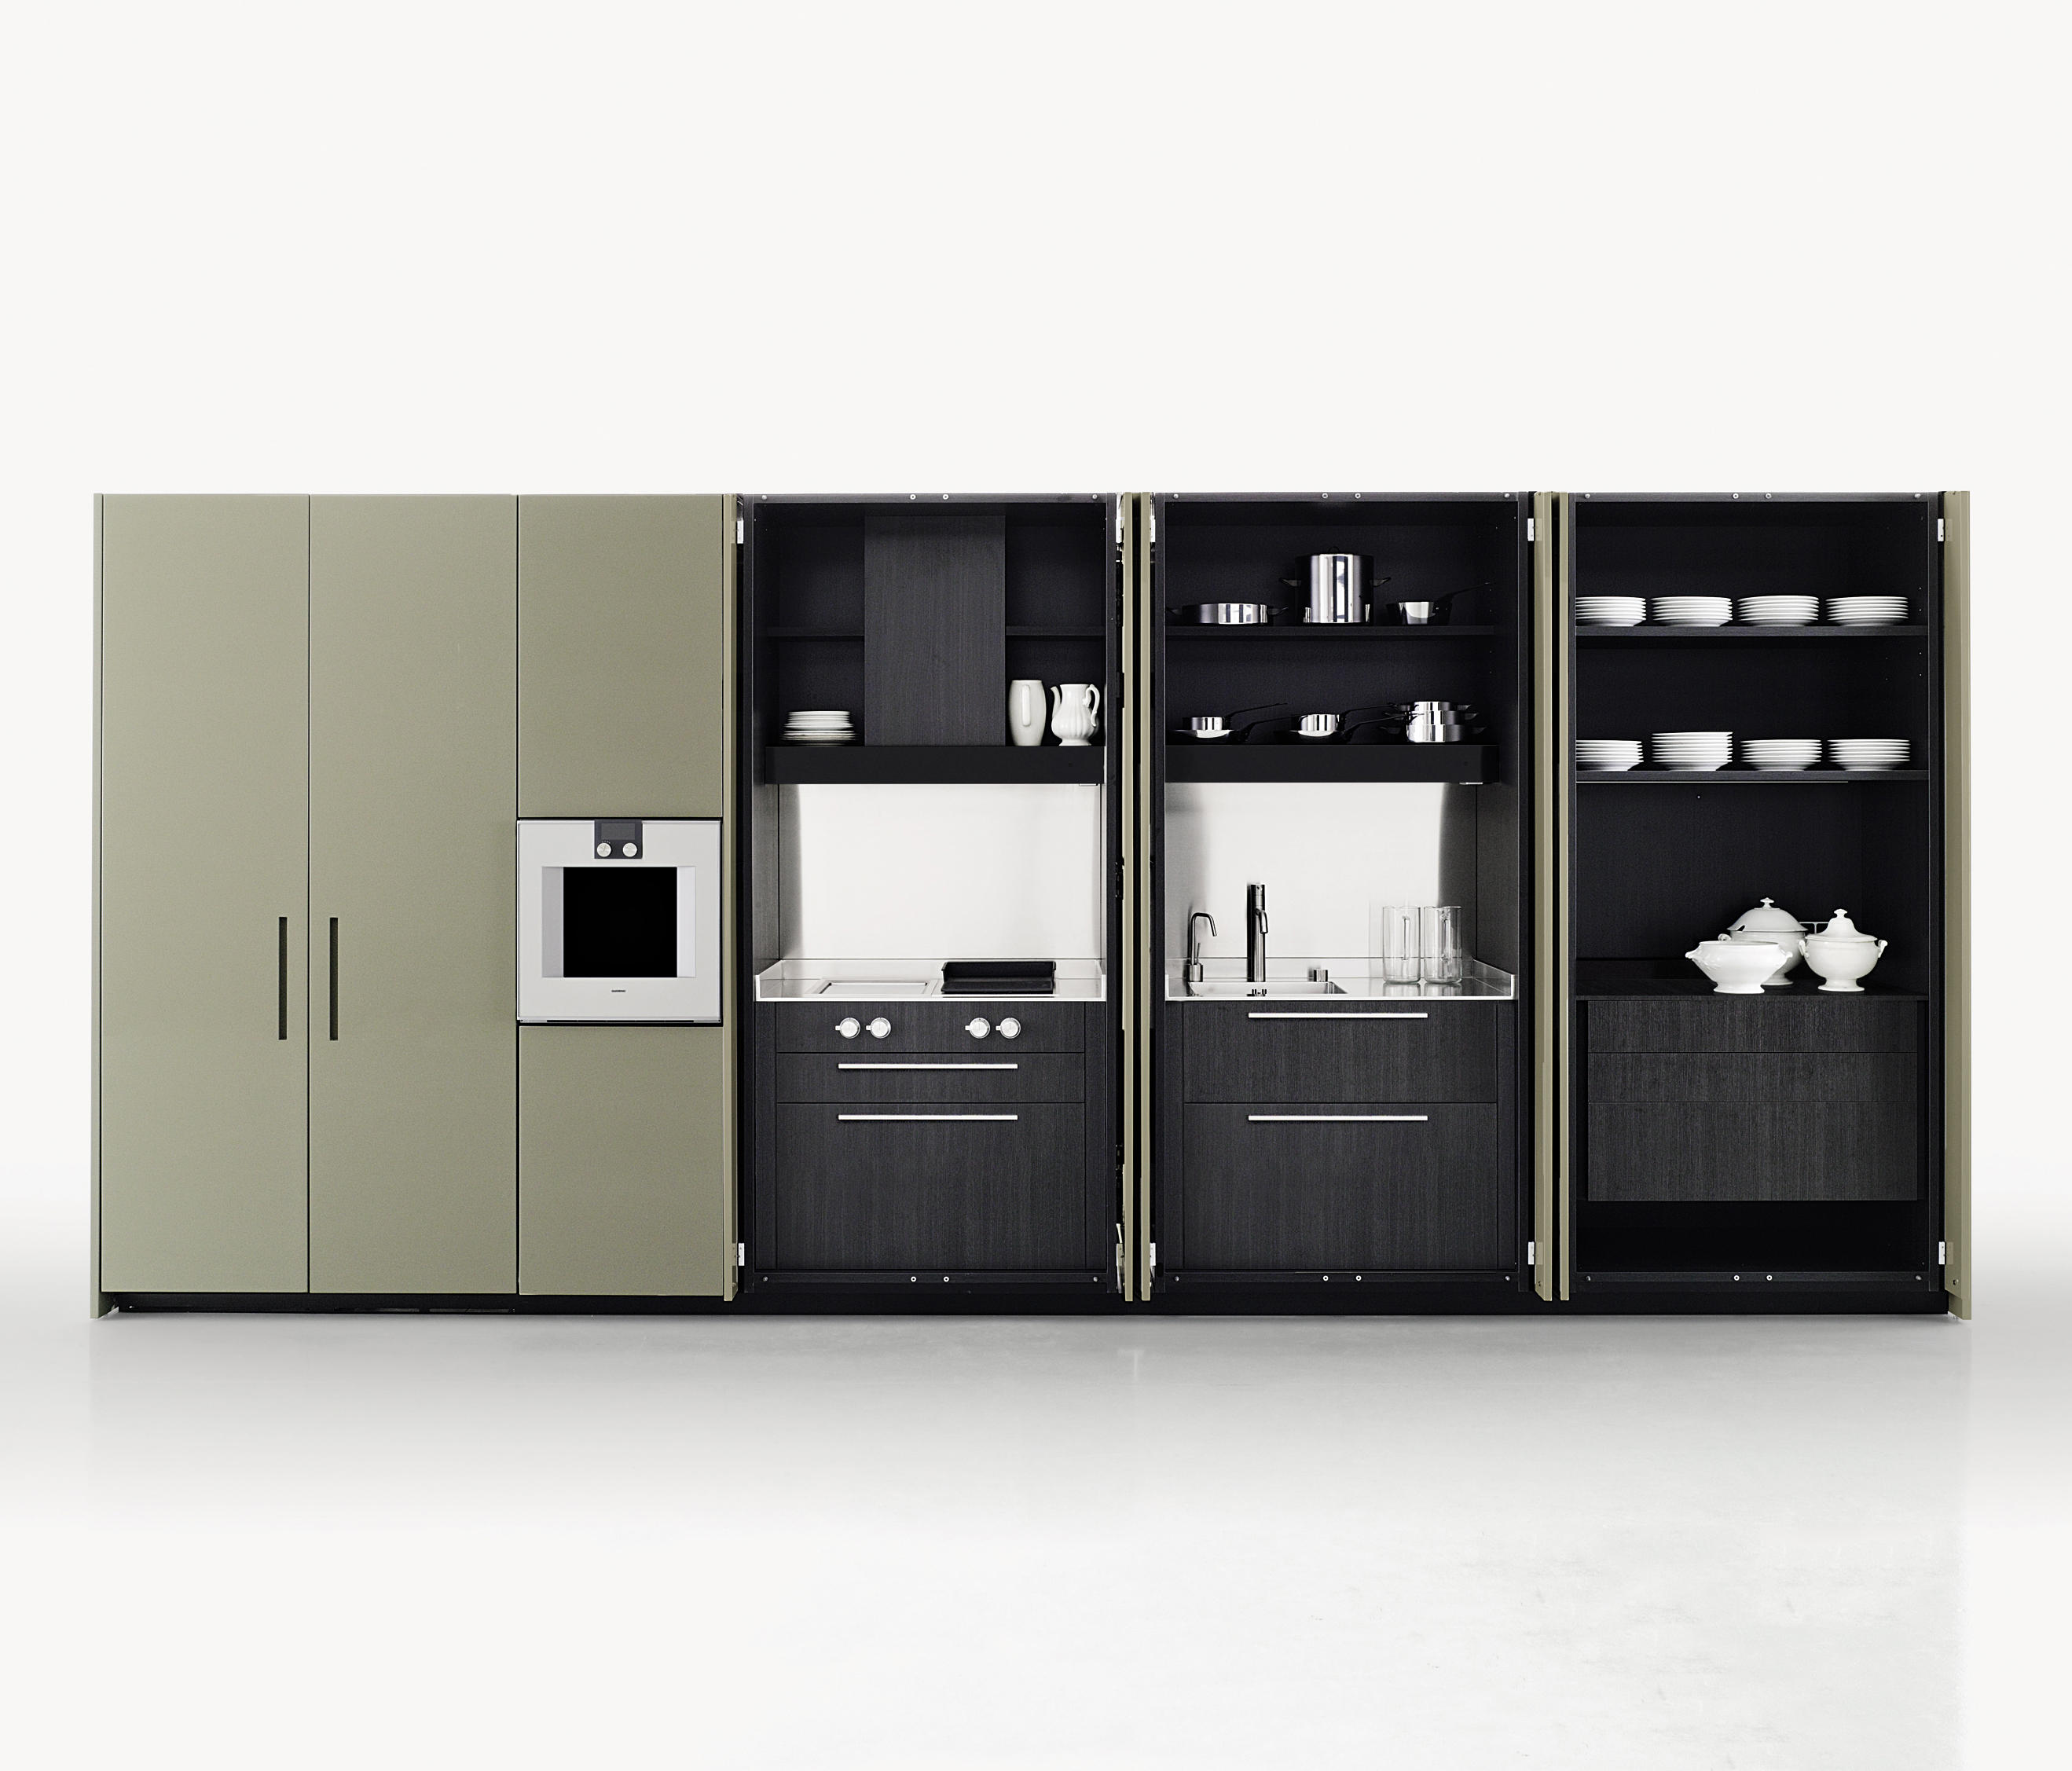 Boffi Cuisine Hide Compact Kitchens From Boffi Architonic